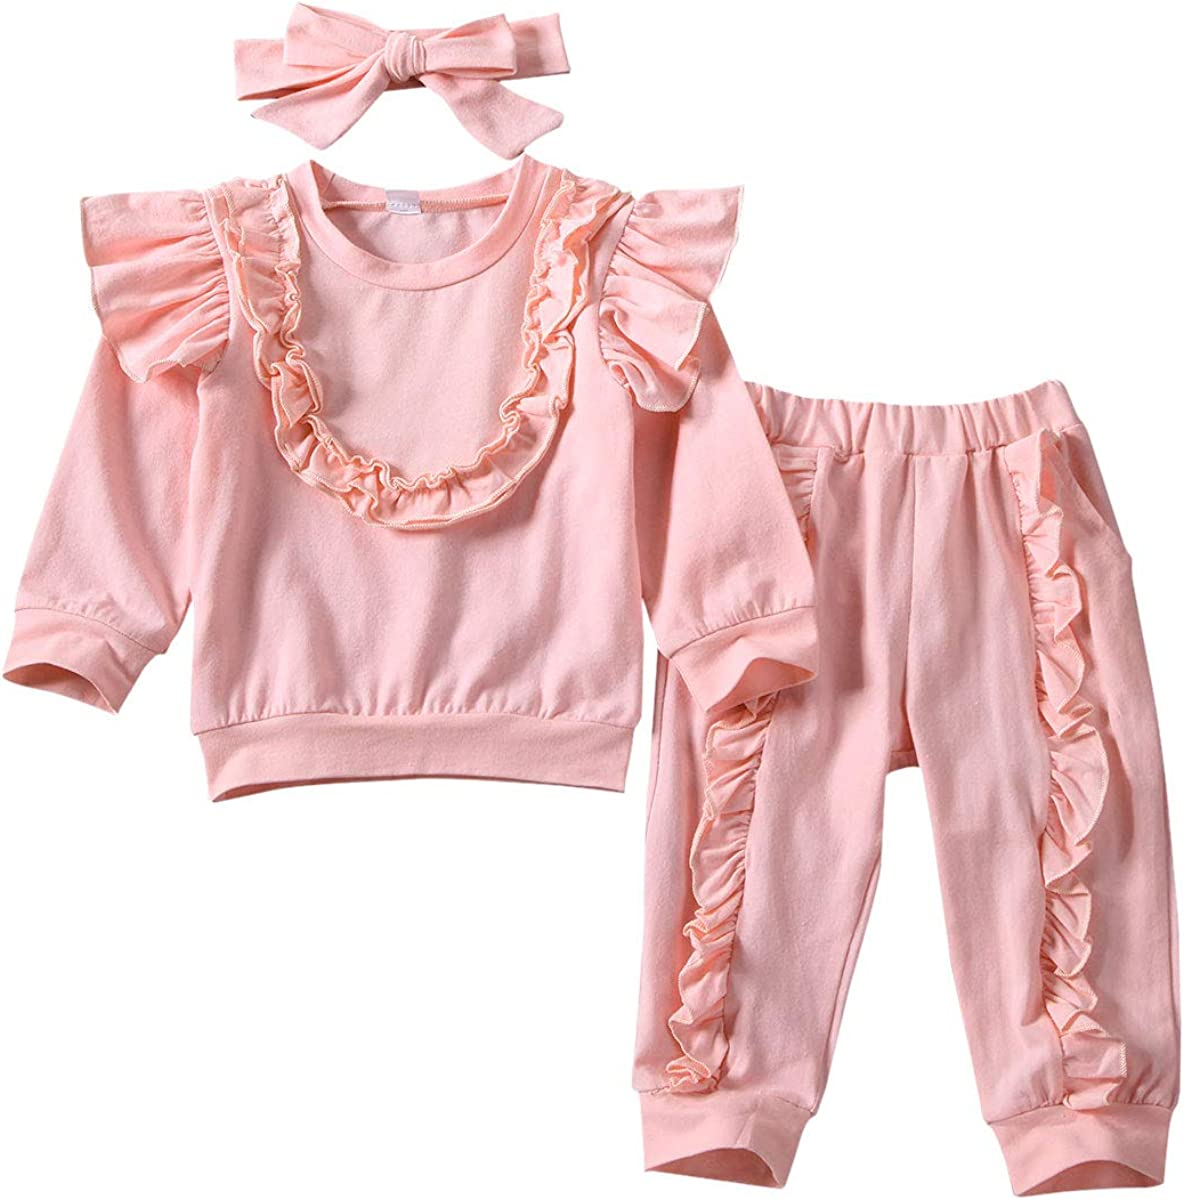 Toddler Baby Girls Ruffle Long Sleeve Tops Pant Outfits Clothes Set Tracksuit US